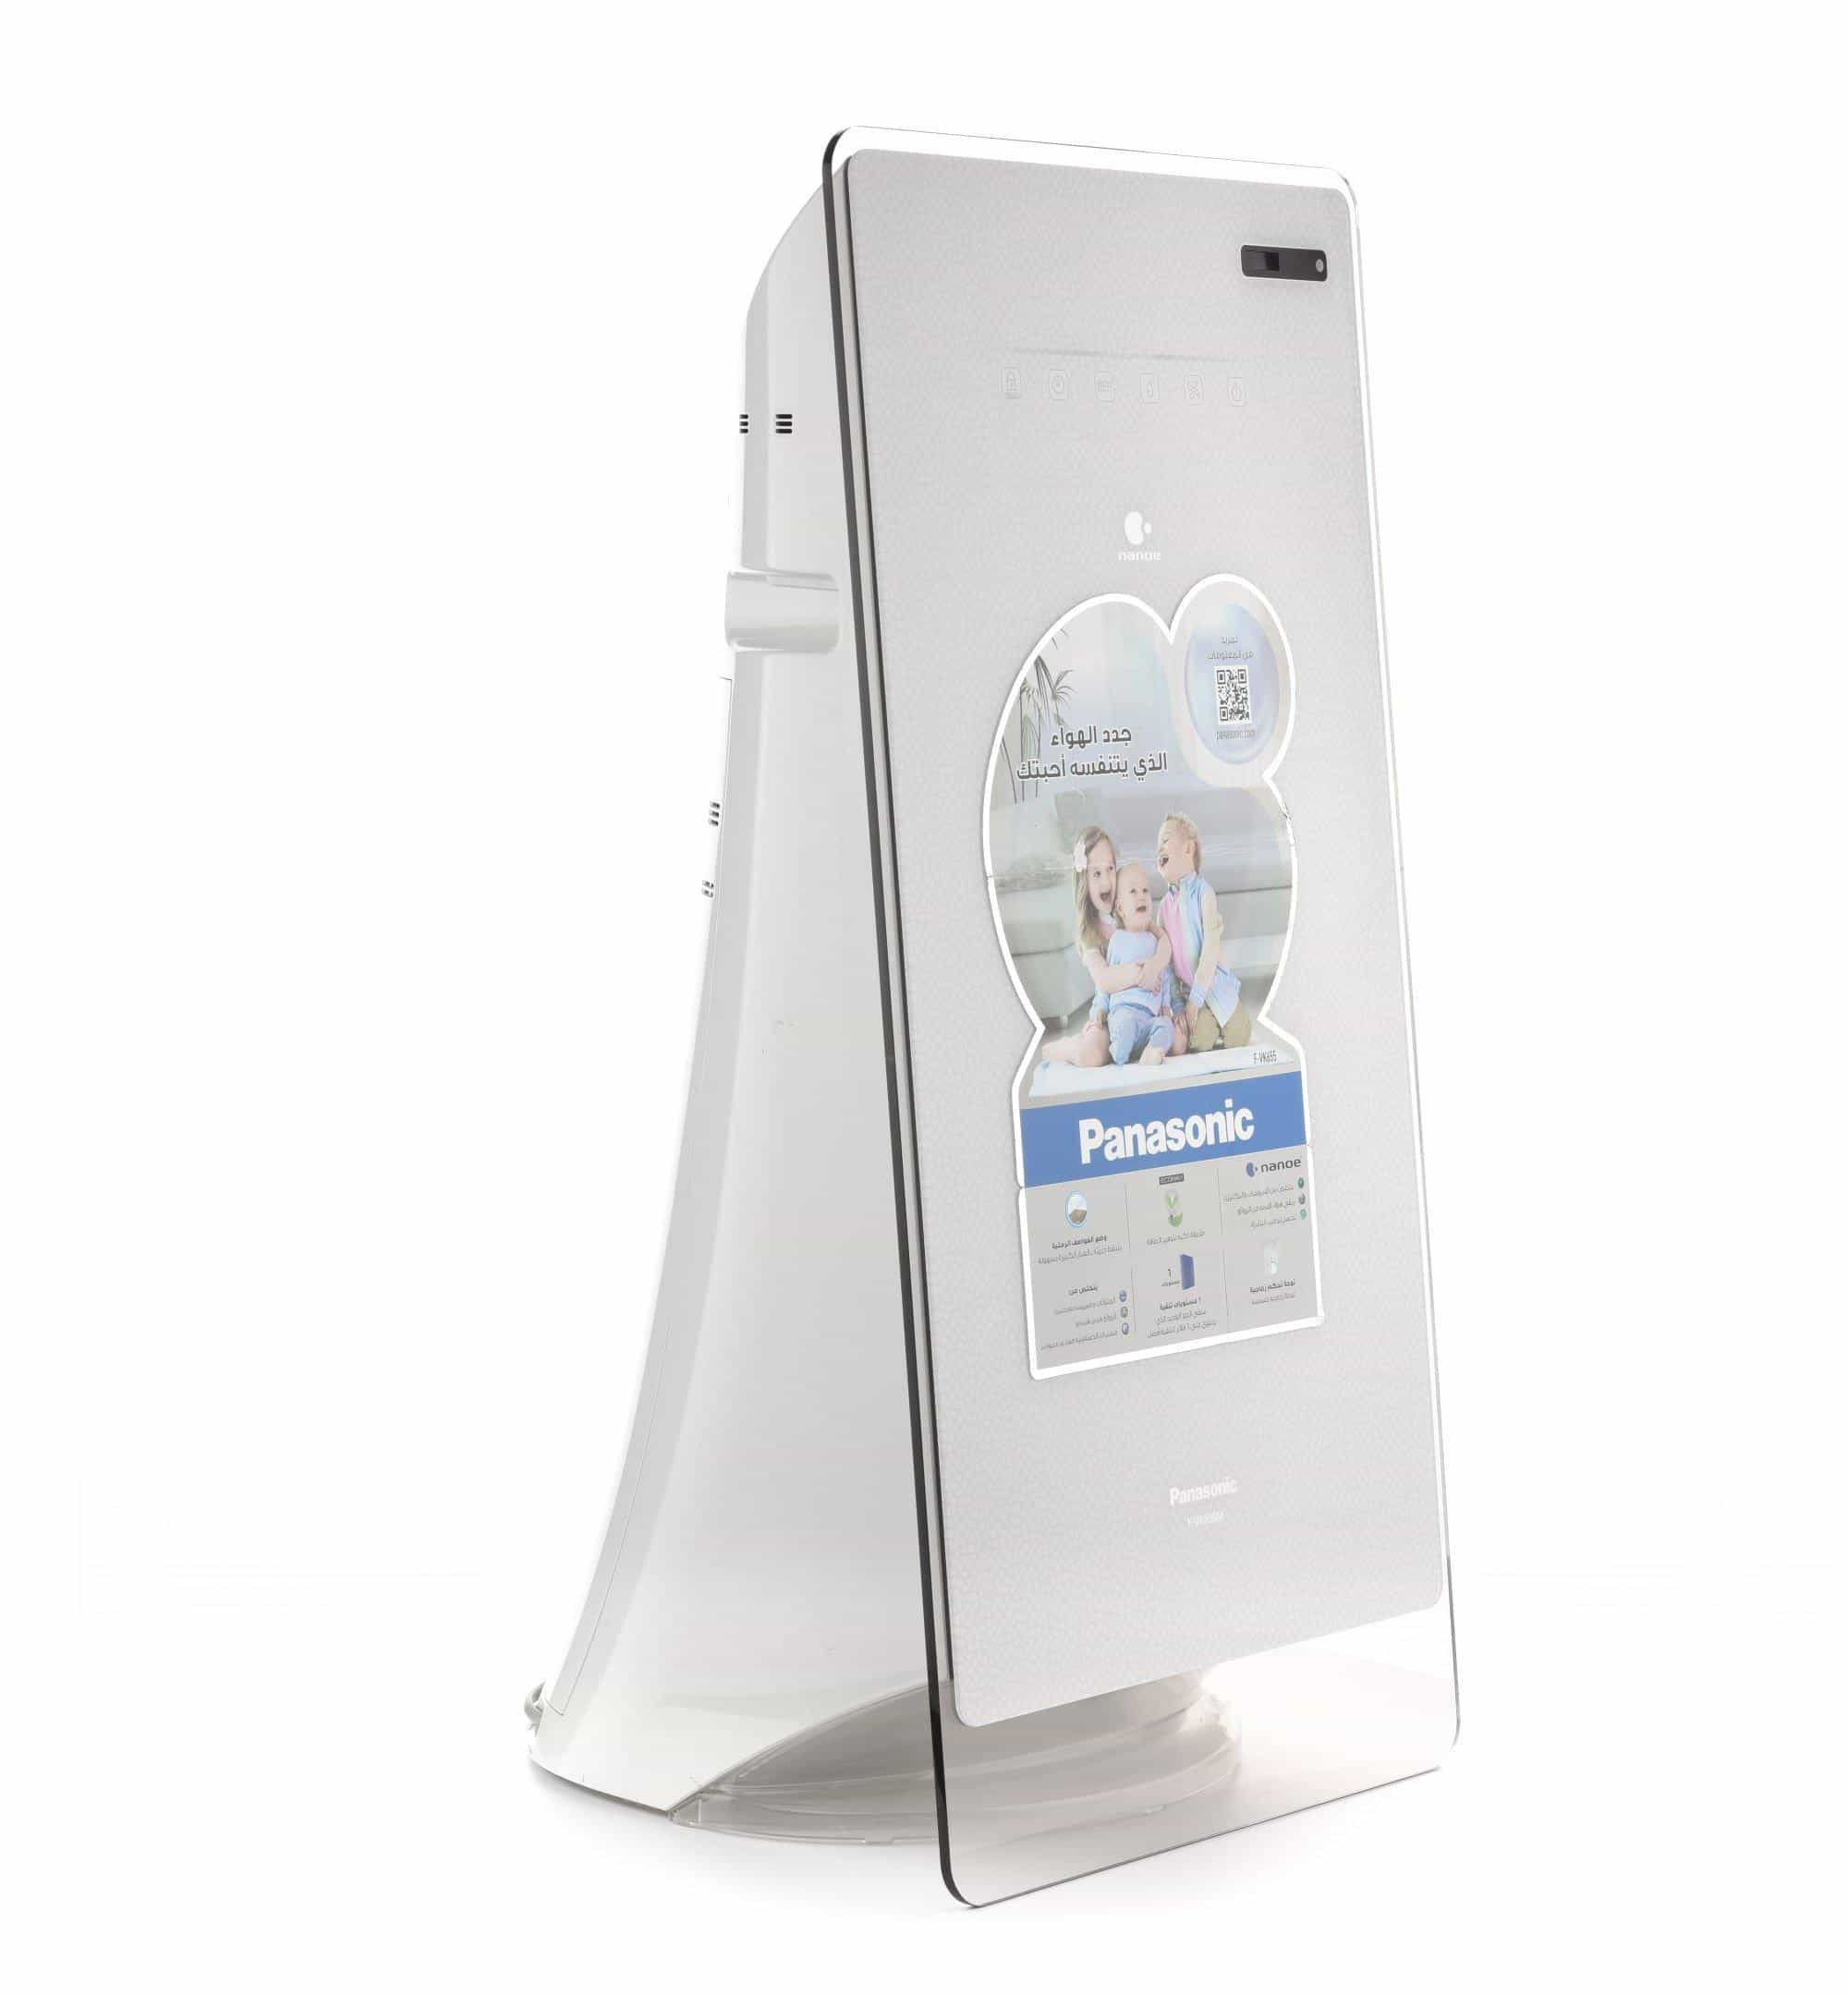 Compare Panasonic Nanoe purification and  deodorization at KSA Price